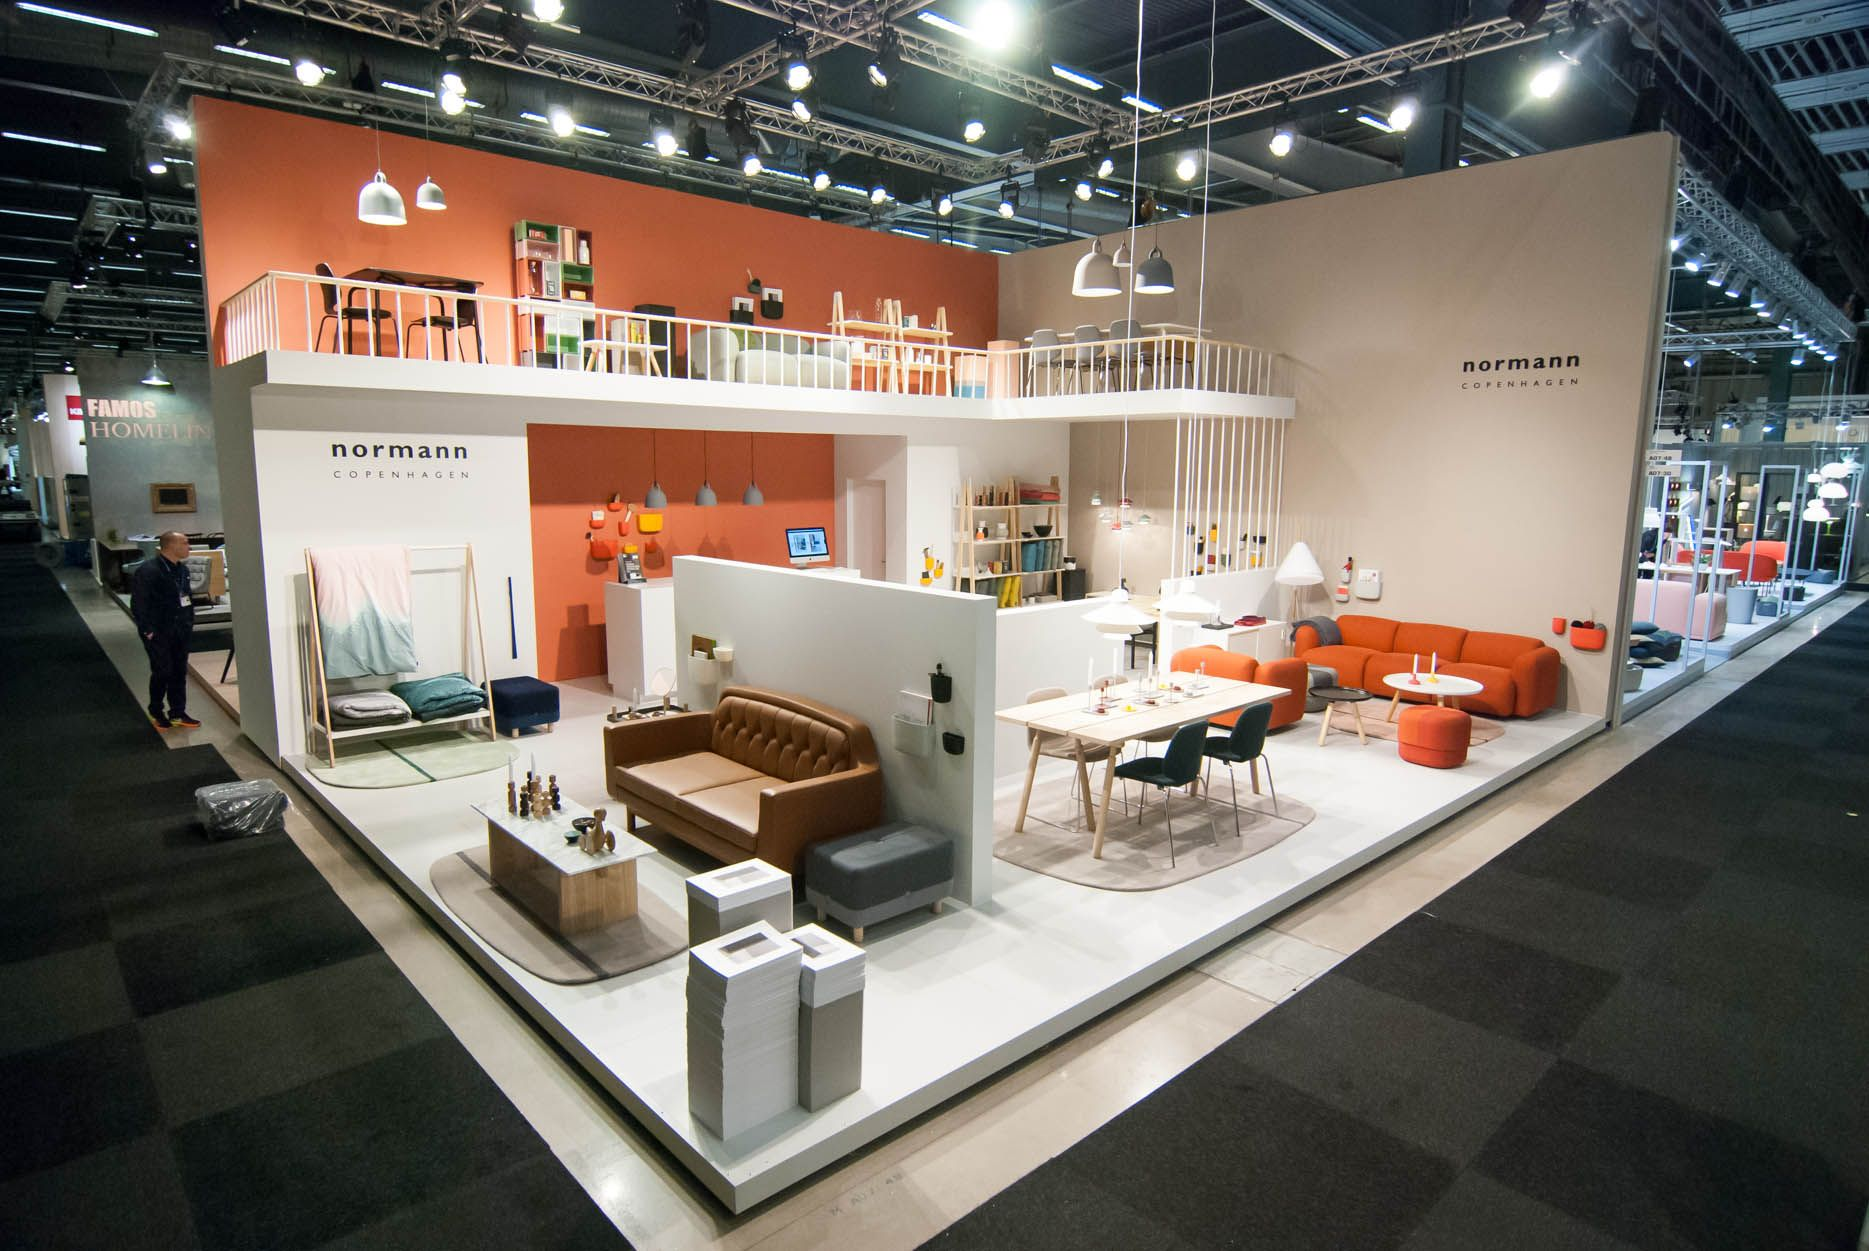 Interior Design Exhibitions 2014 stockholm furniture fair 2014 | normann copenhagen | www.normann